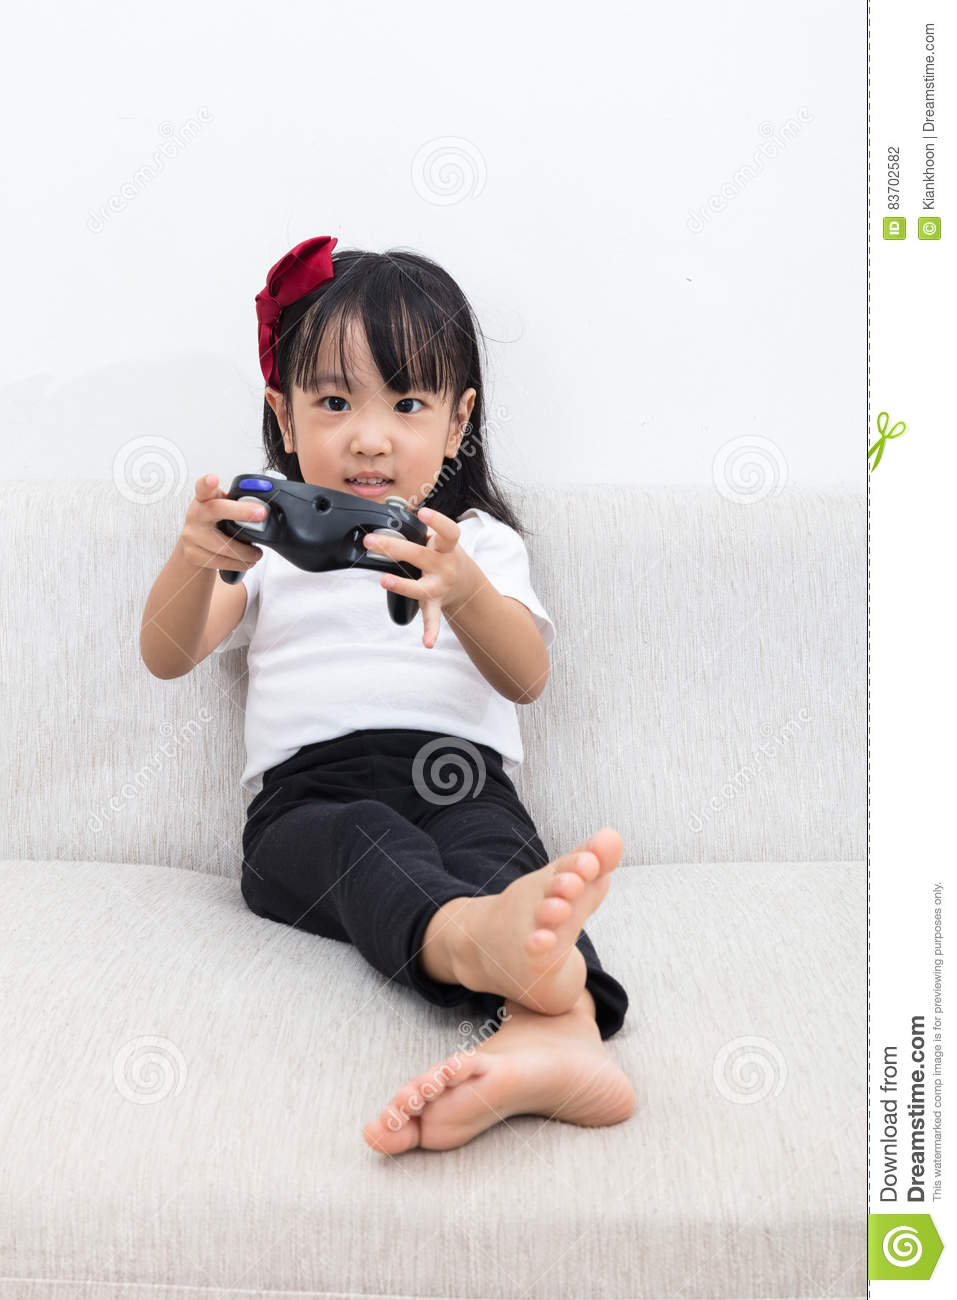 little girl playing video games on the joystick royalty free stock photo. Black Bedroom Furniture Sets. Home Design Ideas